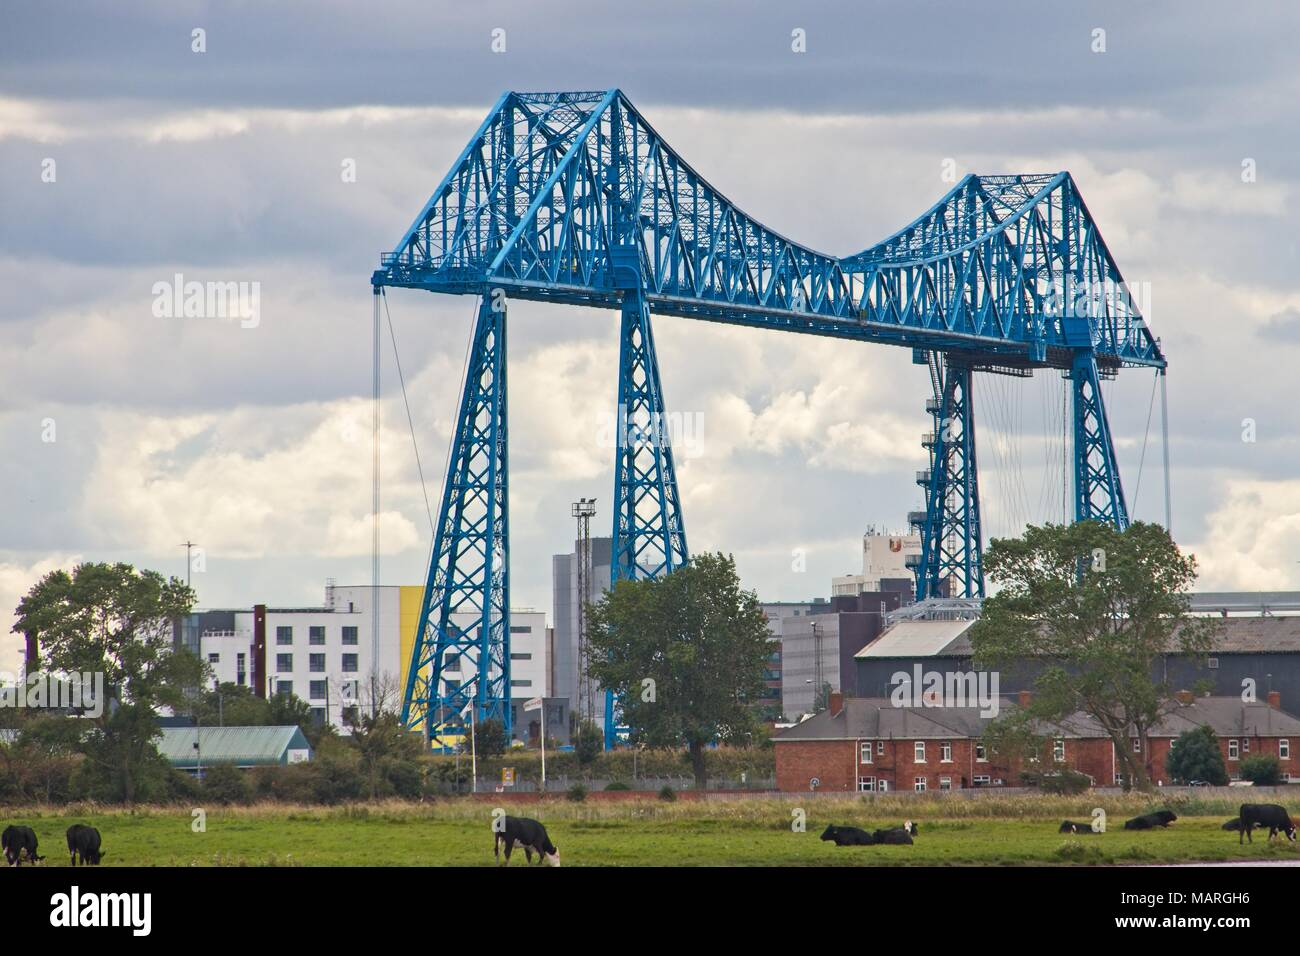 Middlesbrough Transporter Bridge, the longest in the world with its new blue coat of paint. - Stock Image